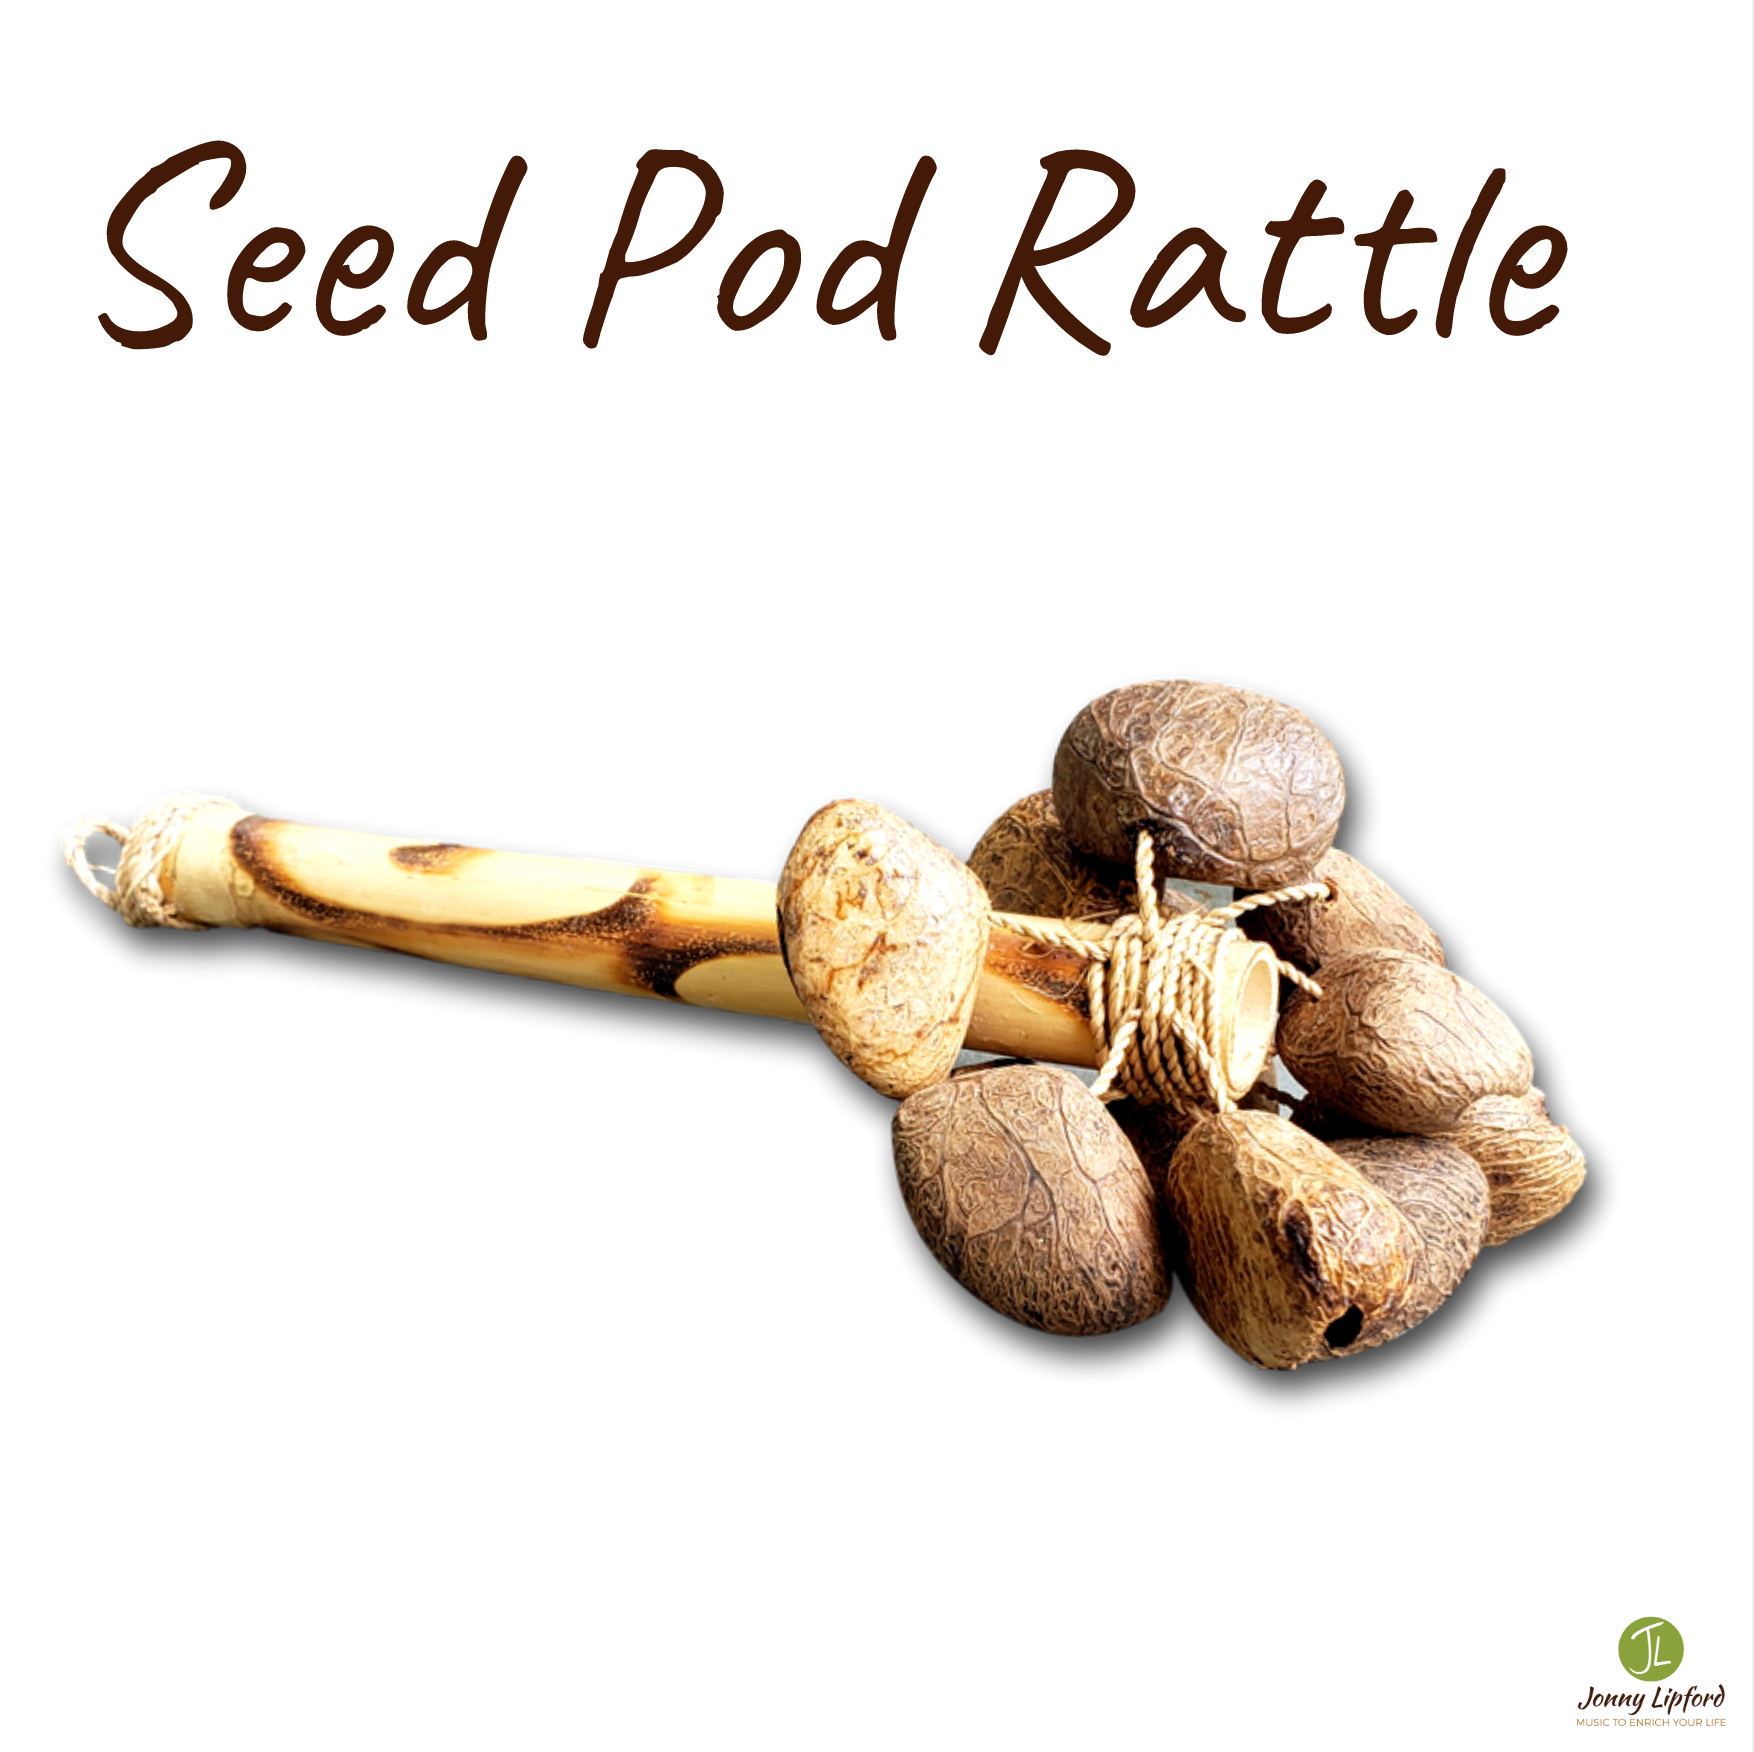 Seed Pod Rattle